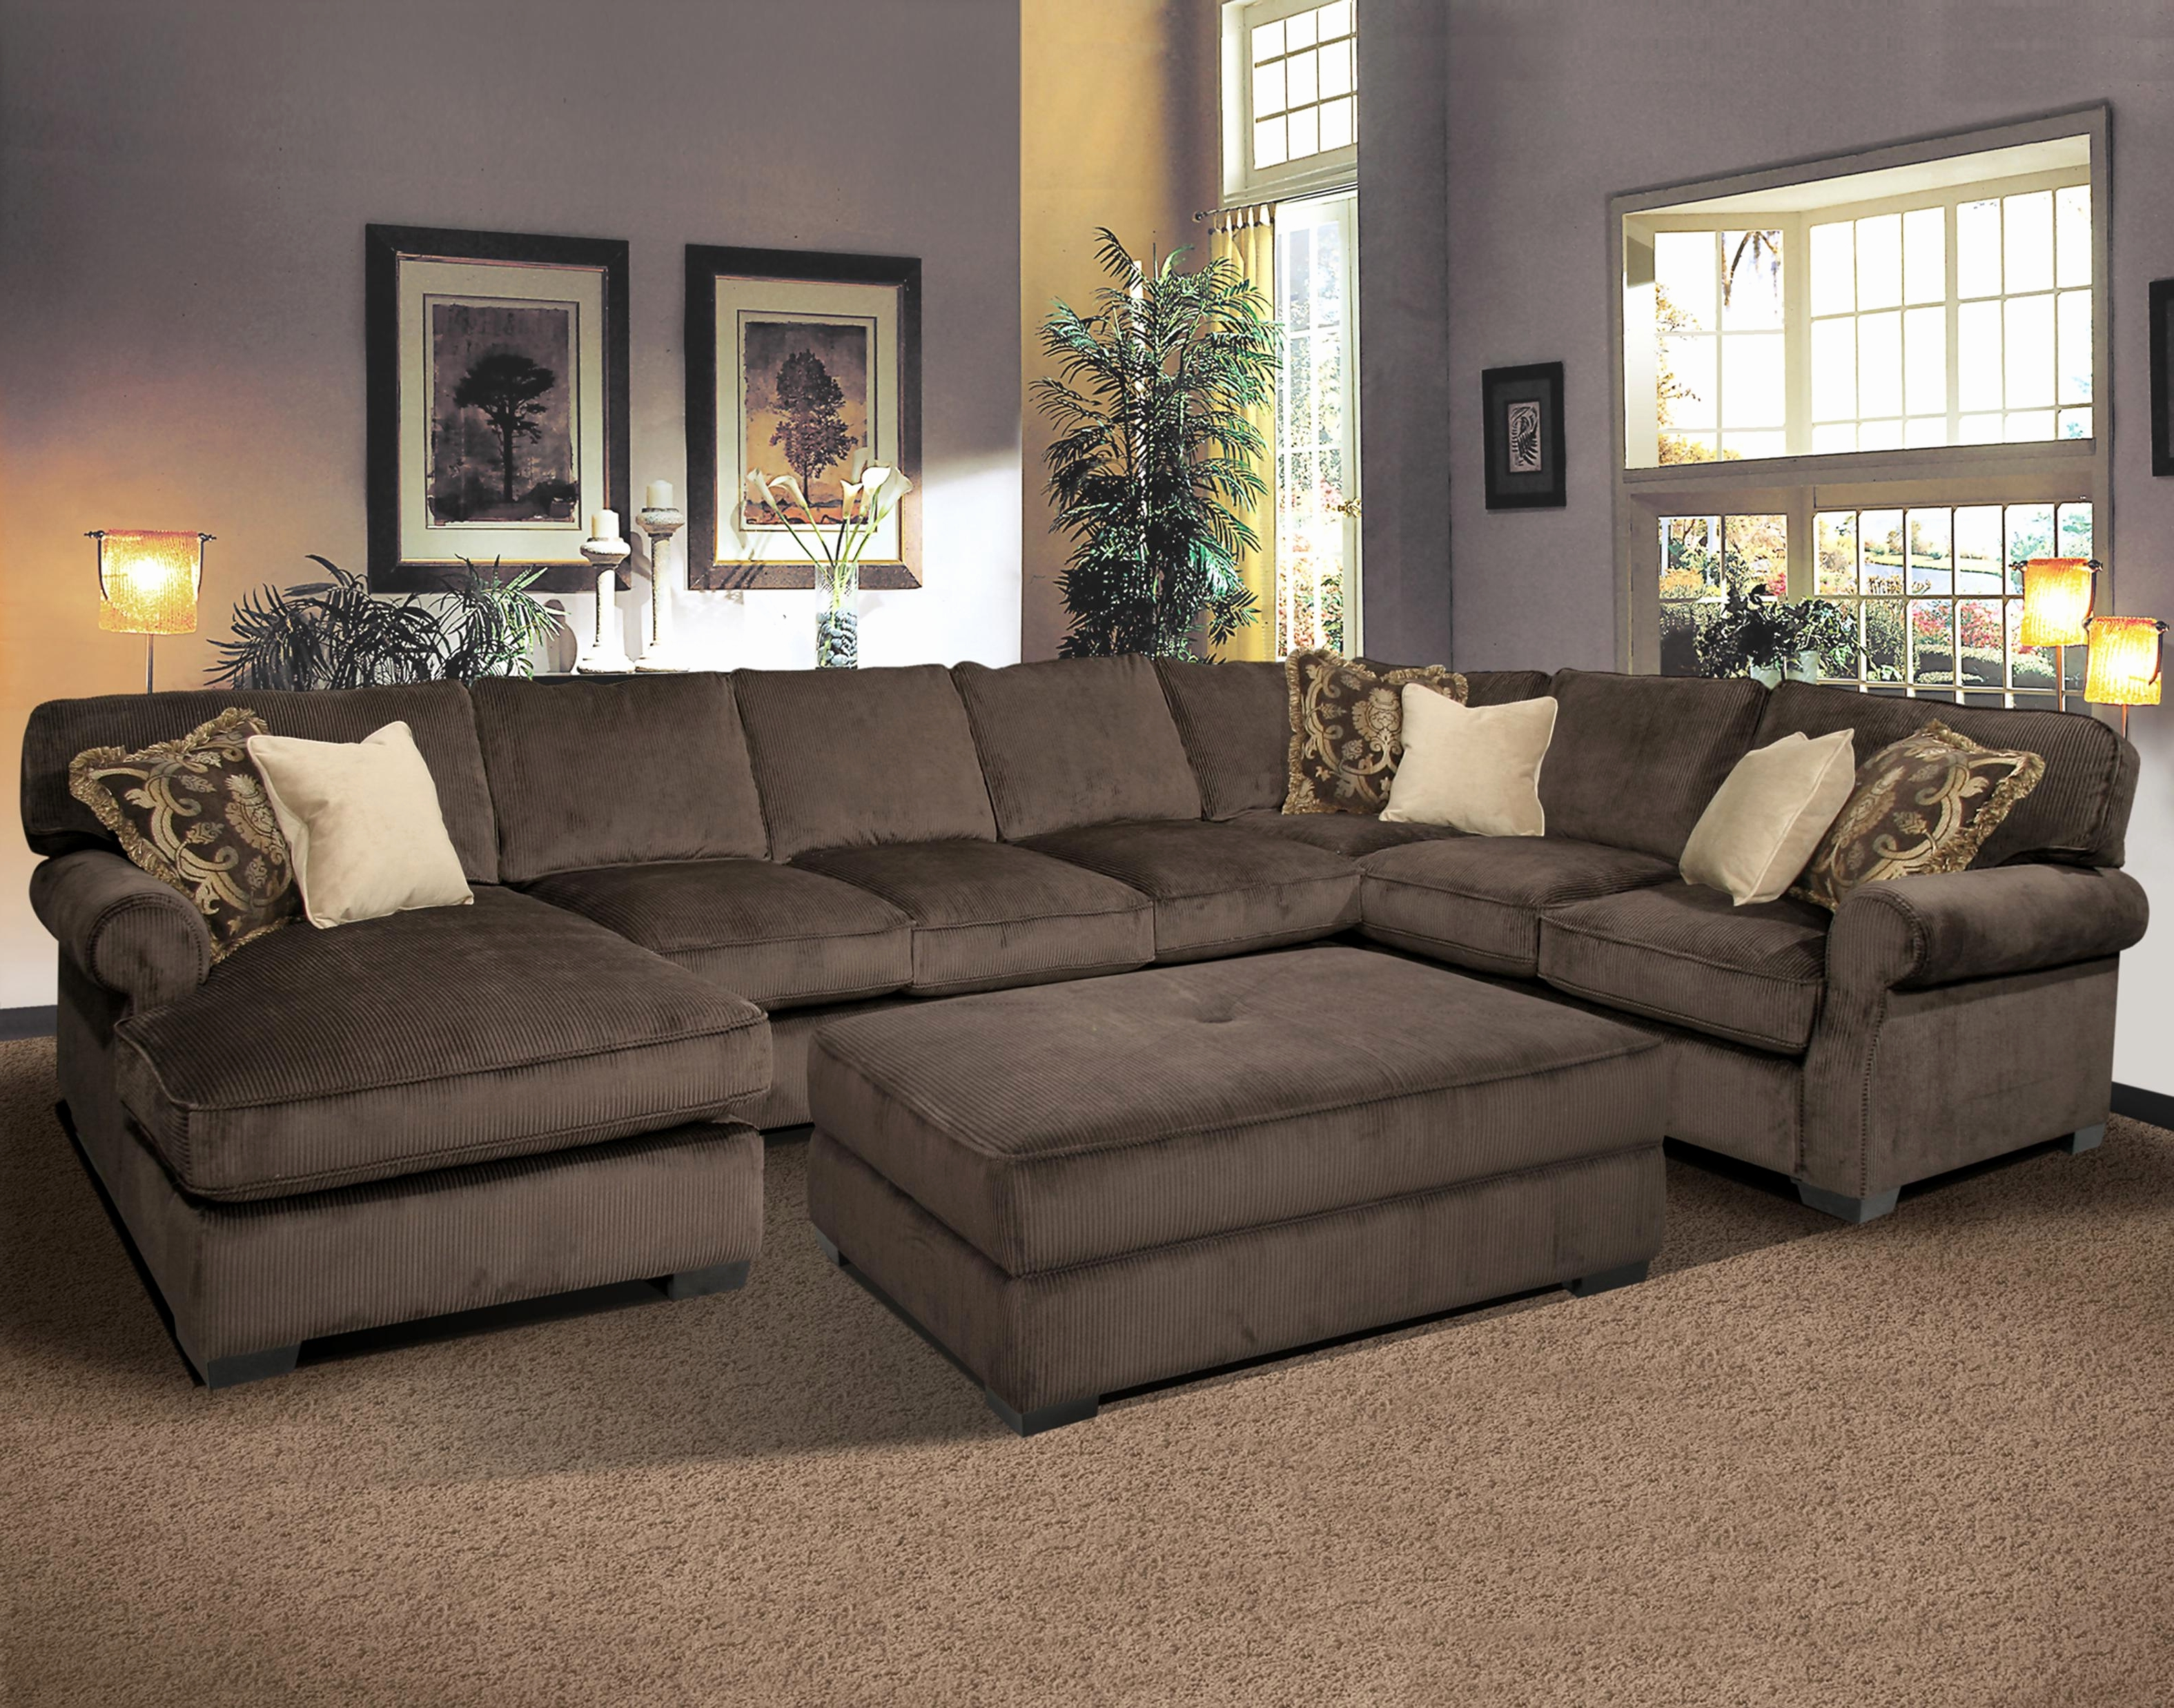 Clearance Sectional Sofas Pertaining To Fashionable Best Modular Sectional Sofa Good Sofa Elegant Clearance Sectional (View 9 of 20)